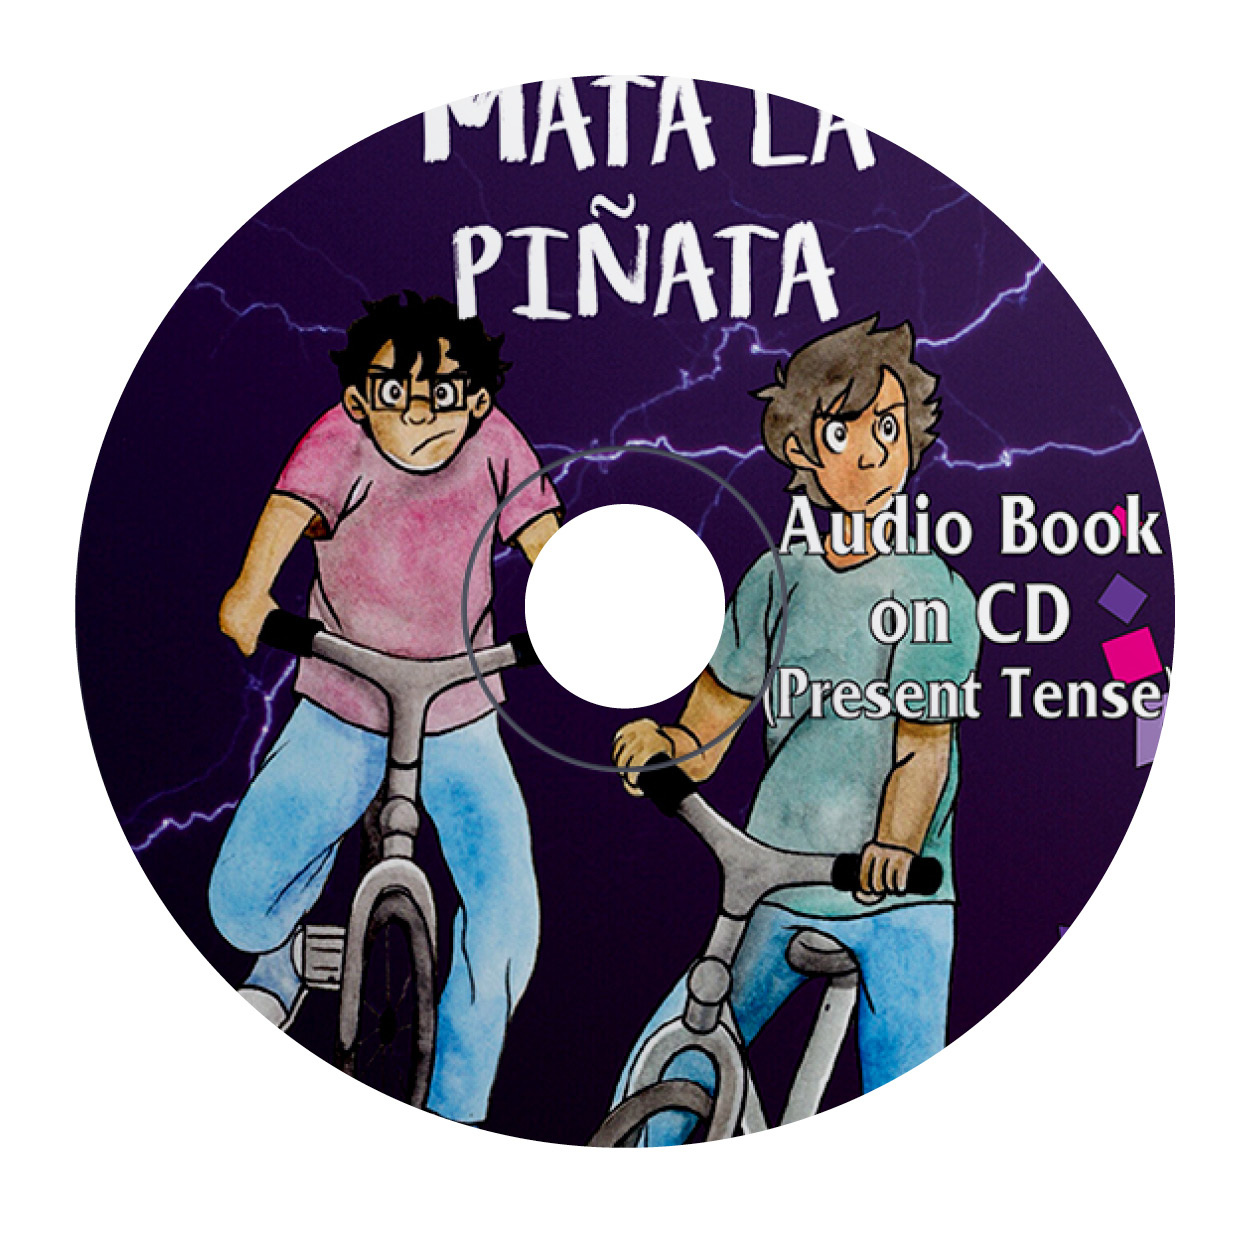 Mata la piñata - Audio Book